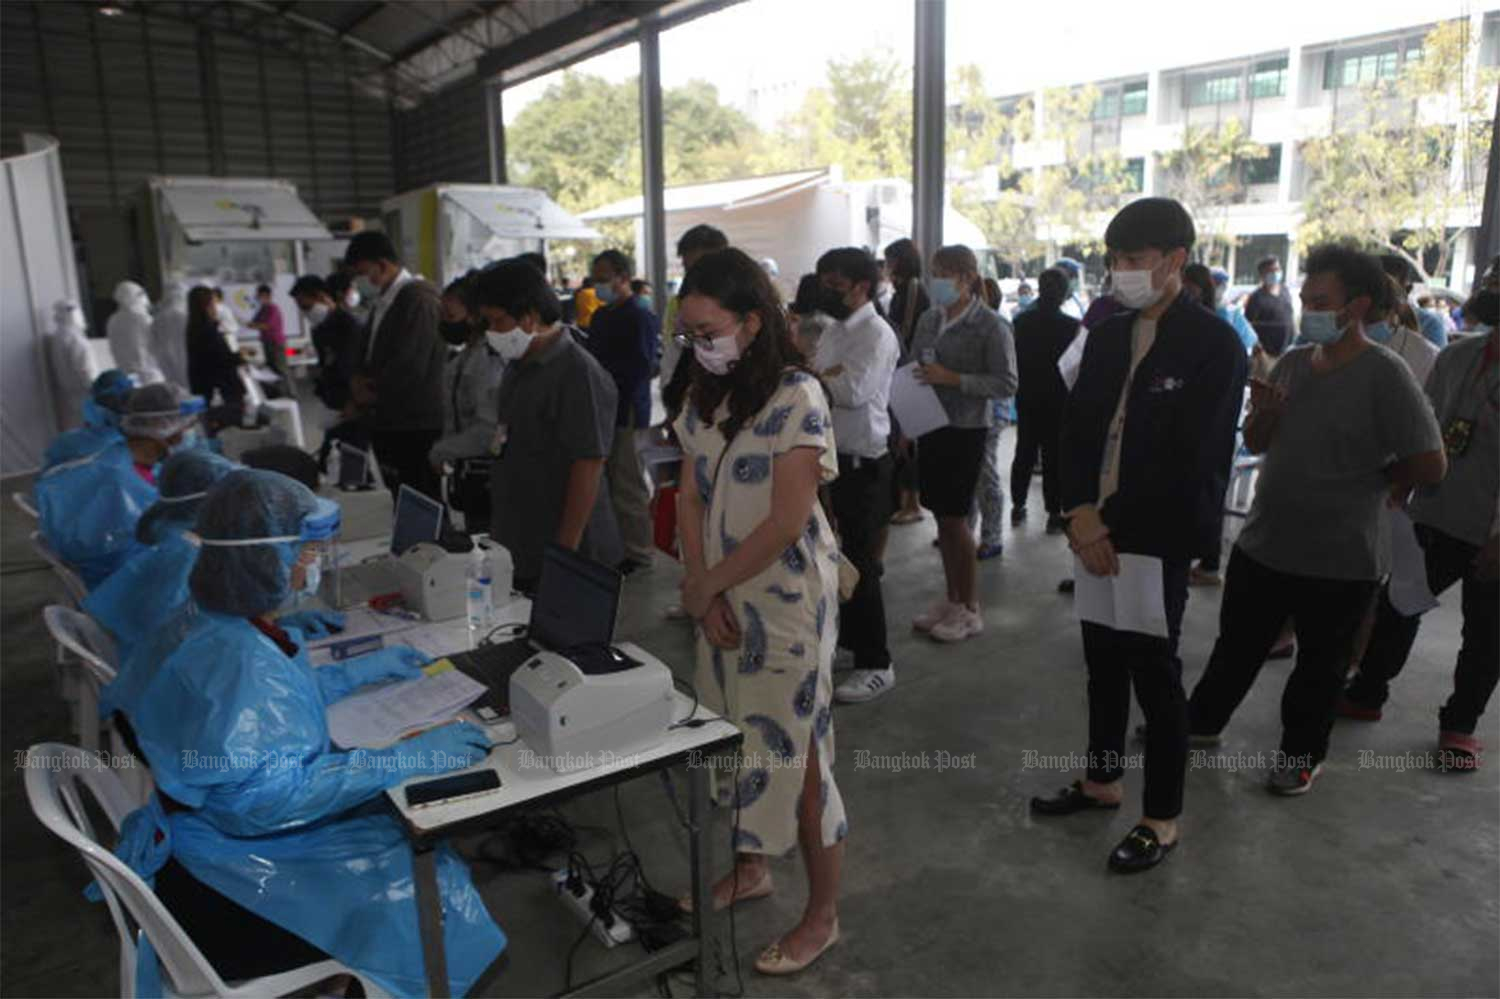 Health officials conduct Covid-19 testing among staff at the National Broadcasting Service of Thailand (NBT) TV channel on Friday after a news anchor was infected. (Photo by Nutthawat Wicheanbut)